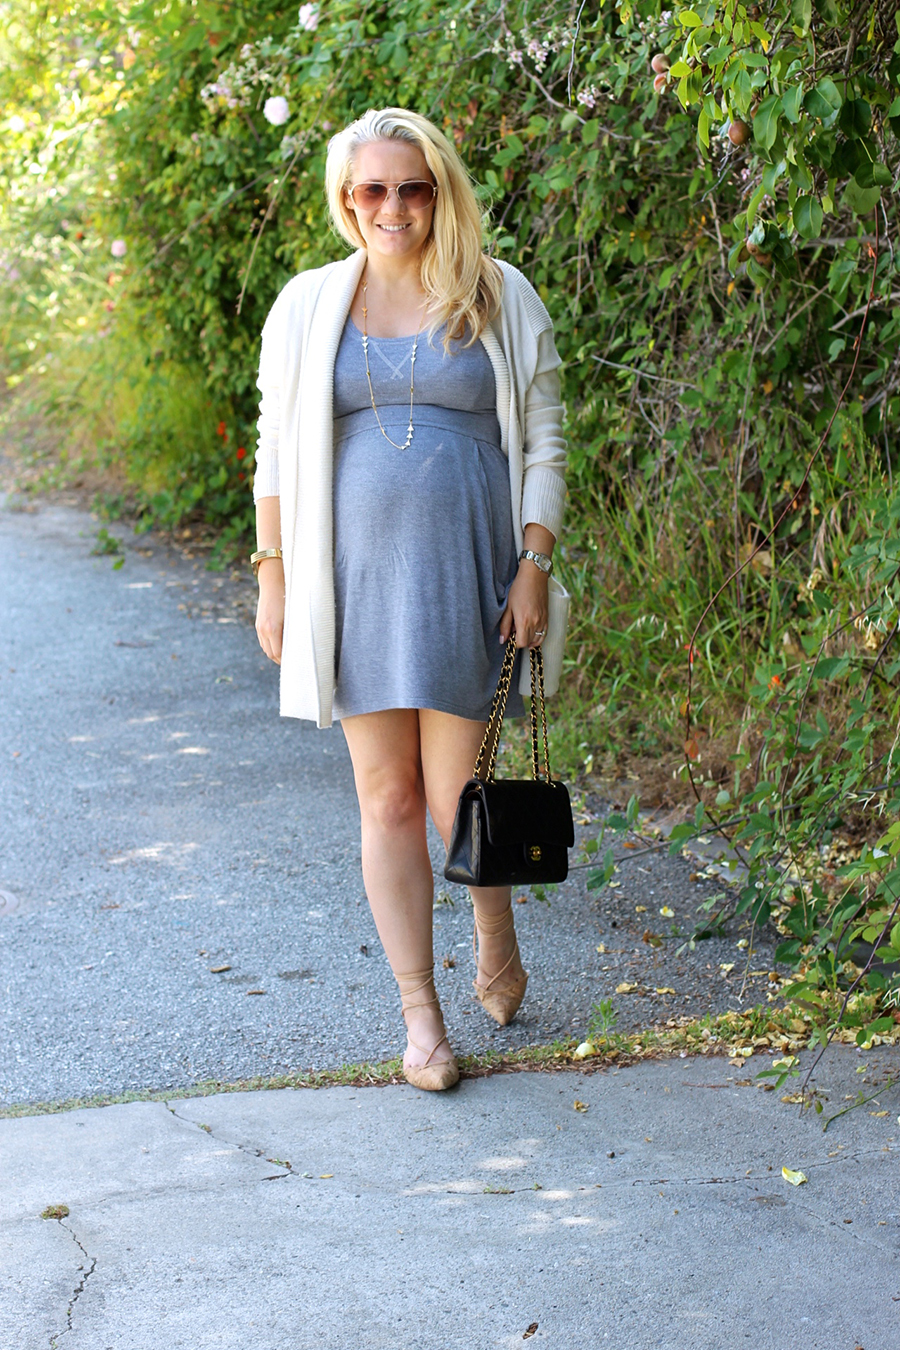 Grey Jersey Mini Dress-Maternity Style-Outfit Inspiration-Pregnancy Style-Have Need Want 6